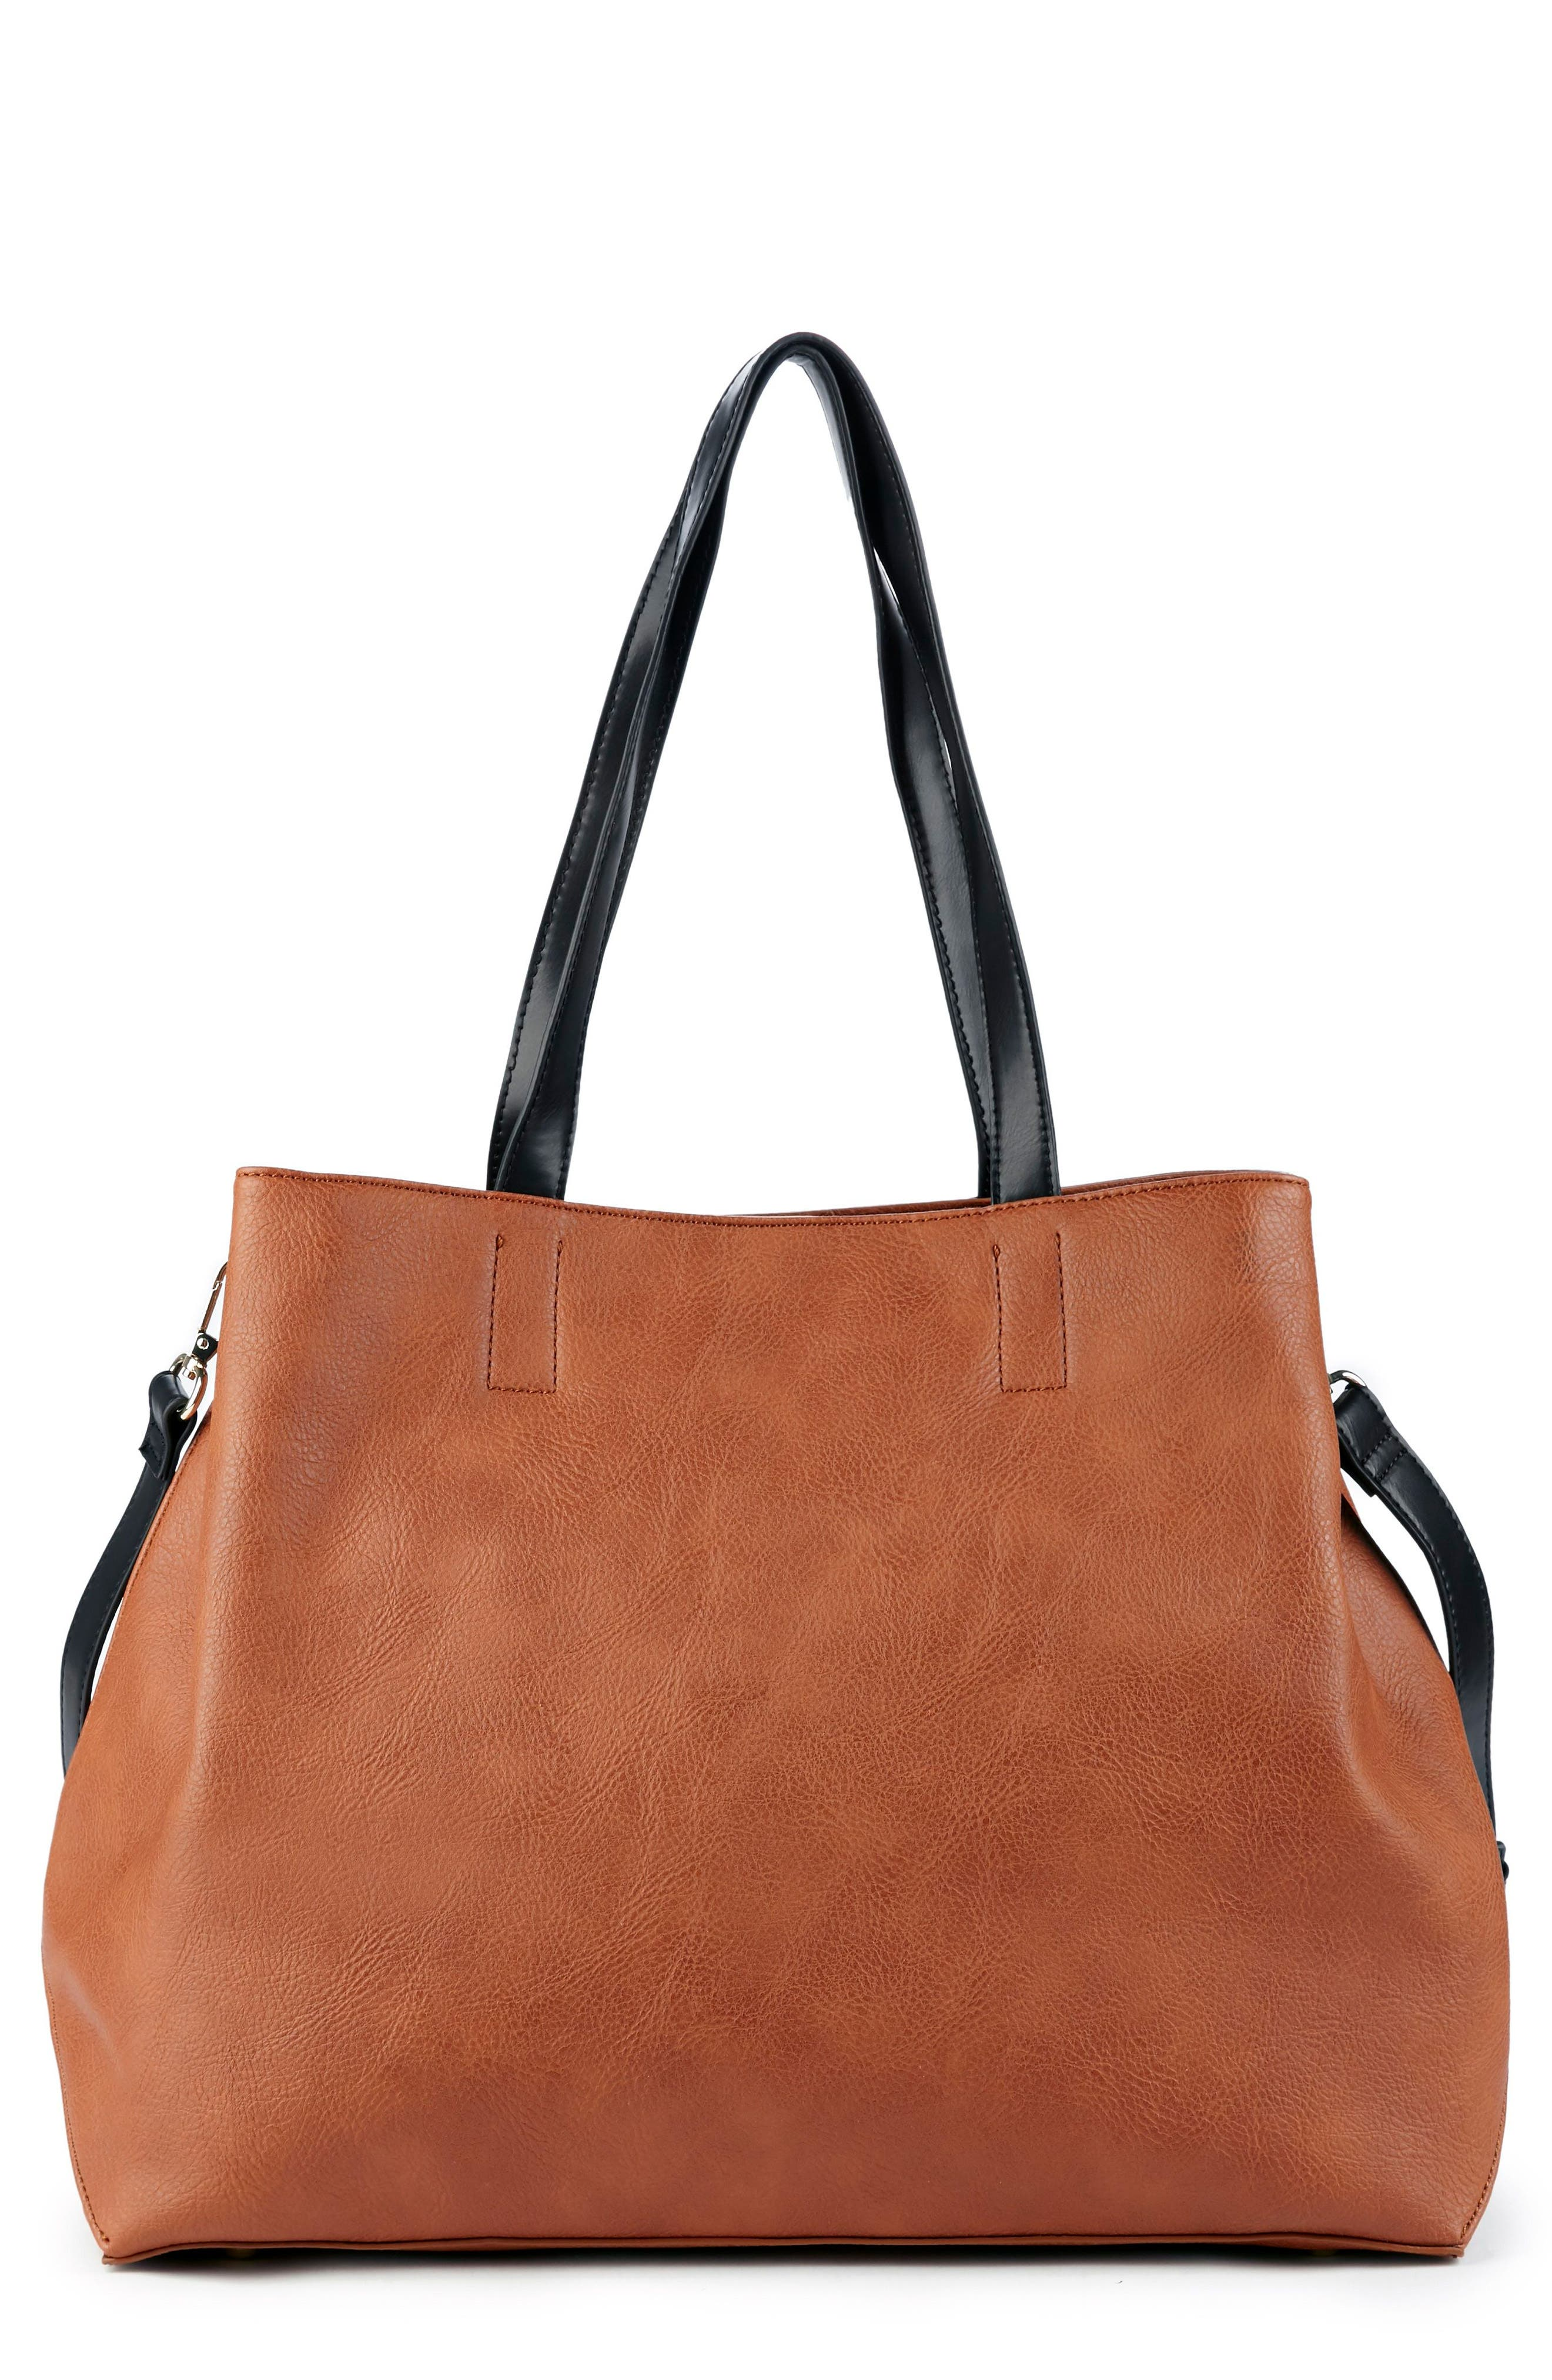 Main Image - Sole Society Hester Faux Leather Tote